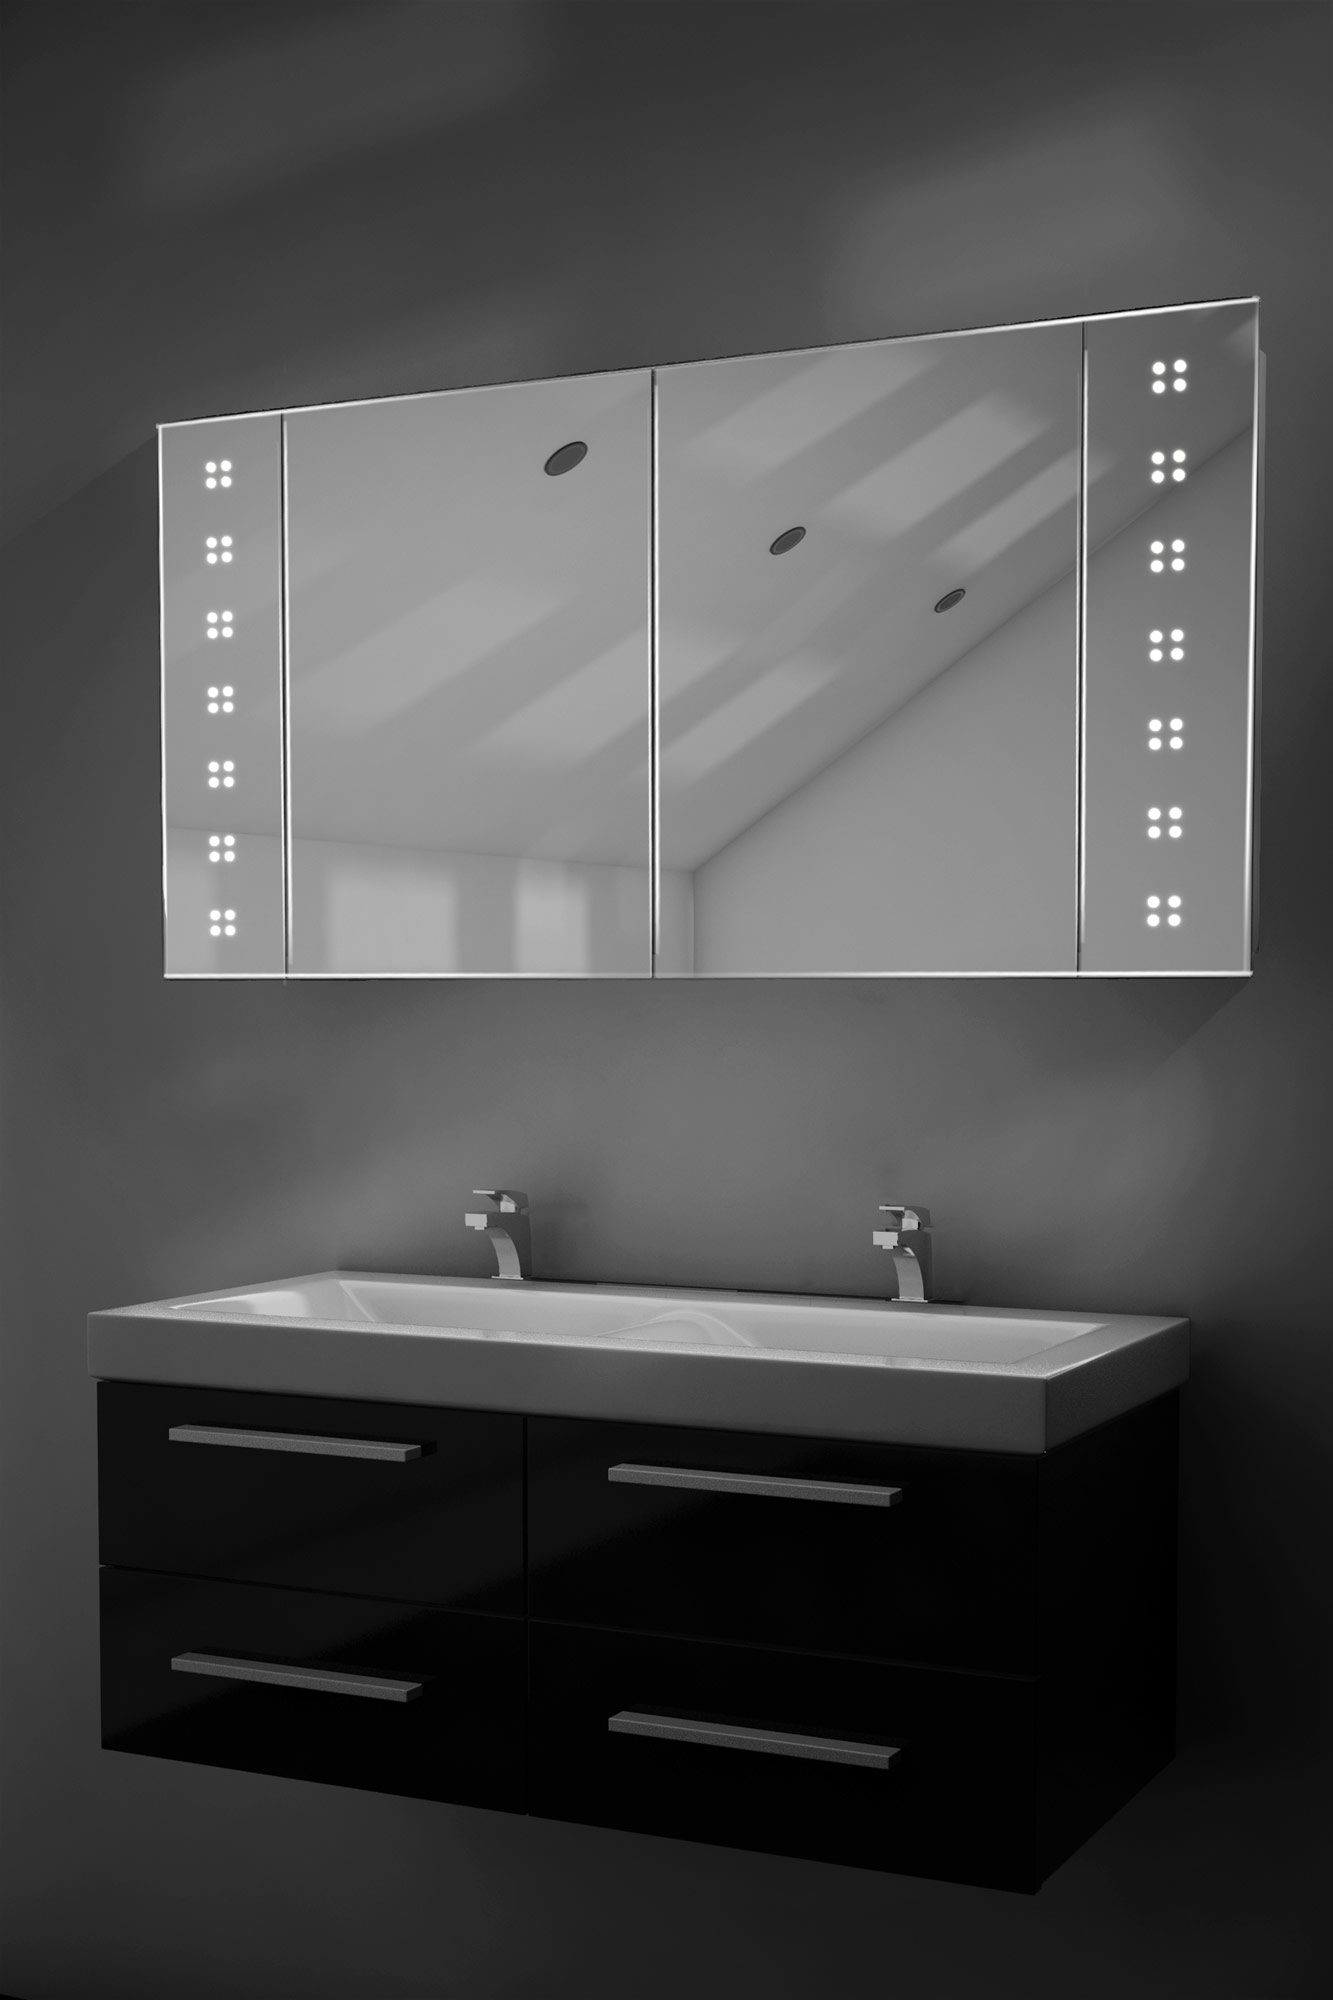 Illuminated bathroom cabinets mirrors shaver socket - Home Bathroom Mirror Bathroom Mirror Cabinets Makeup Mirrors